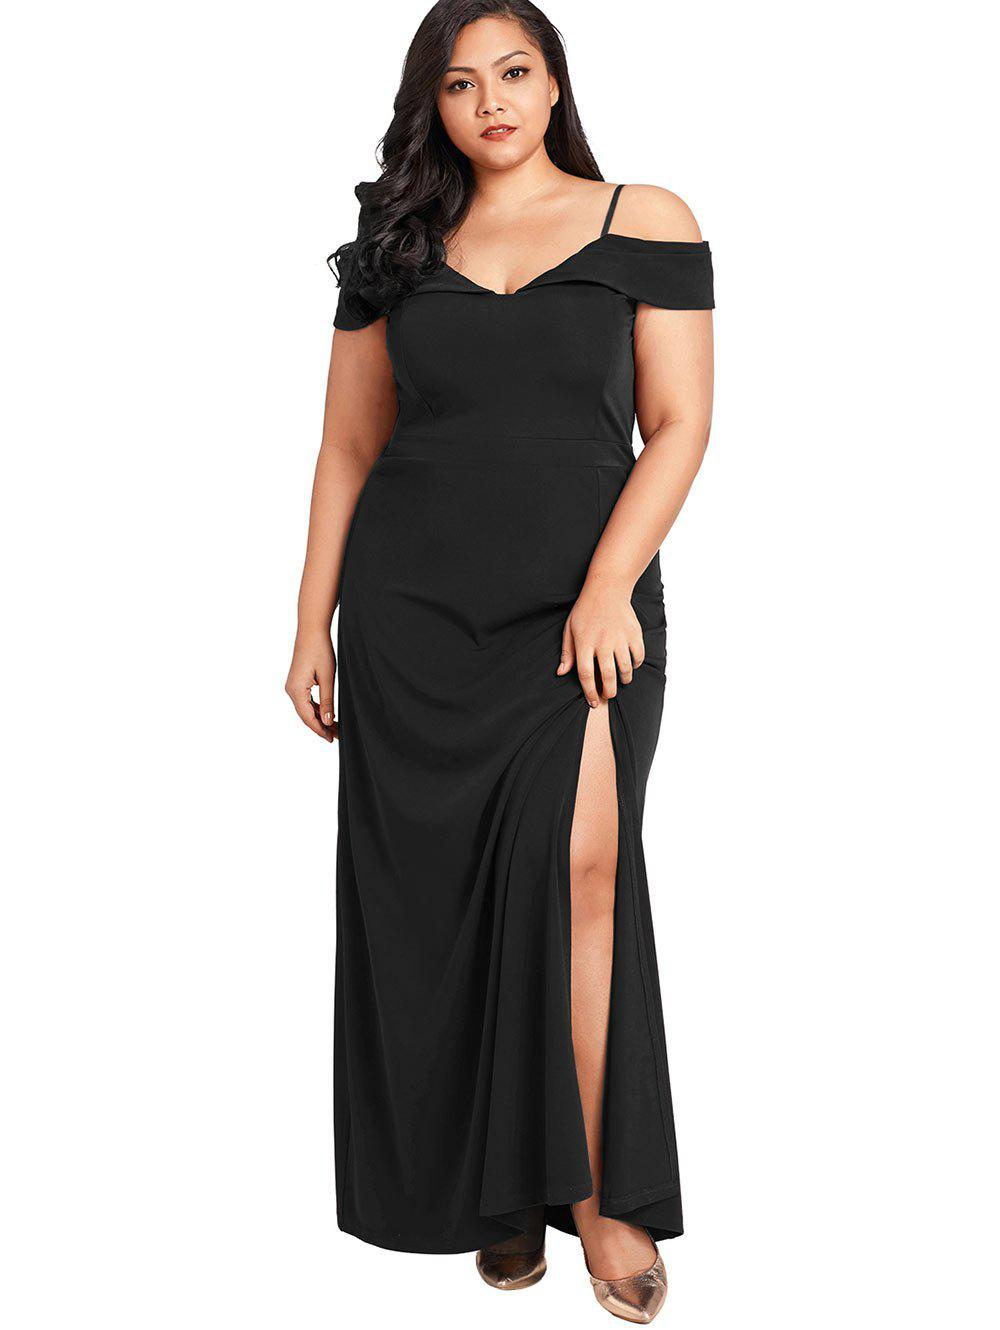 Spaghetti Strap Plus Size Maxi Dress Noir 4X